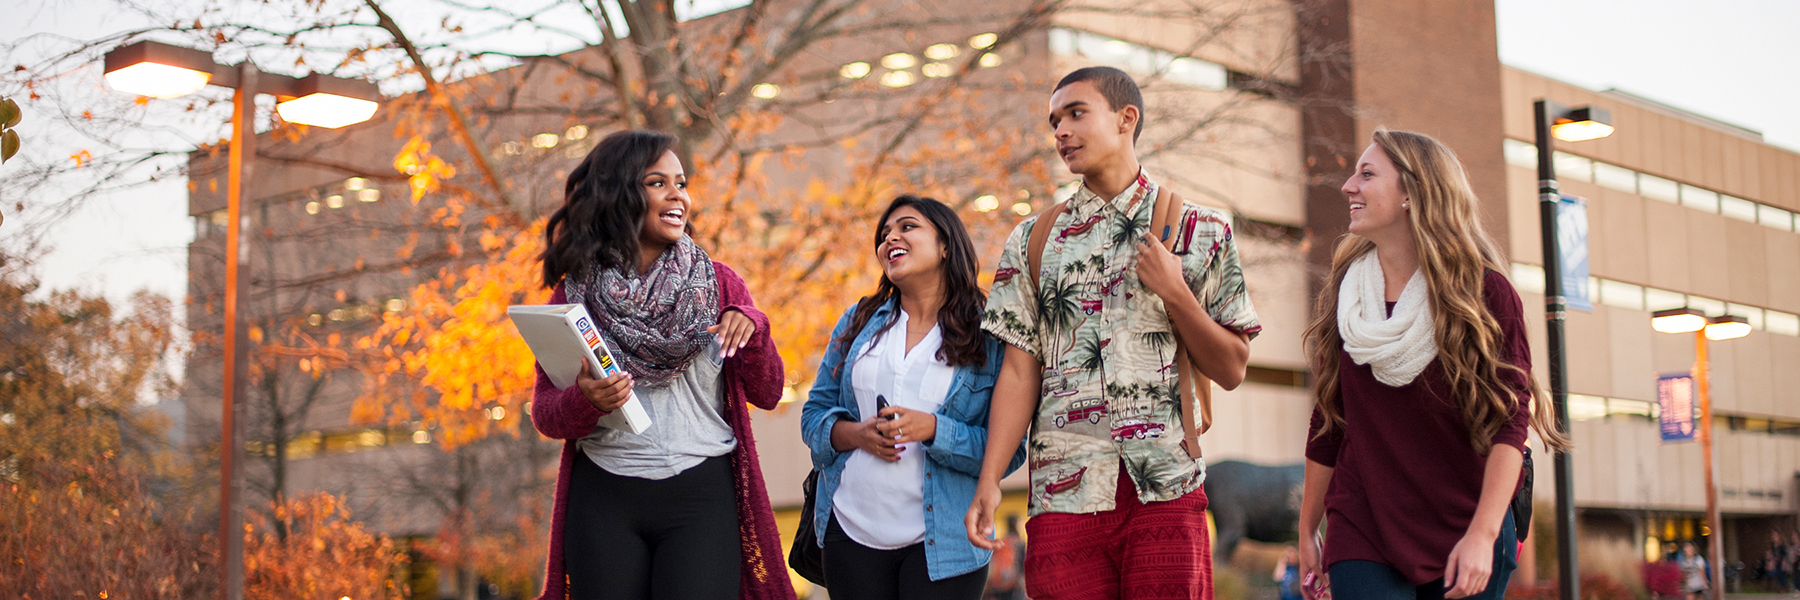 A group of students chat as they walk on campus during the fall.